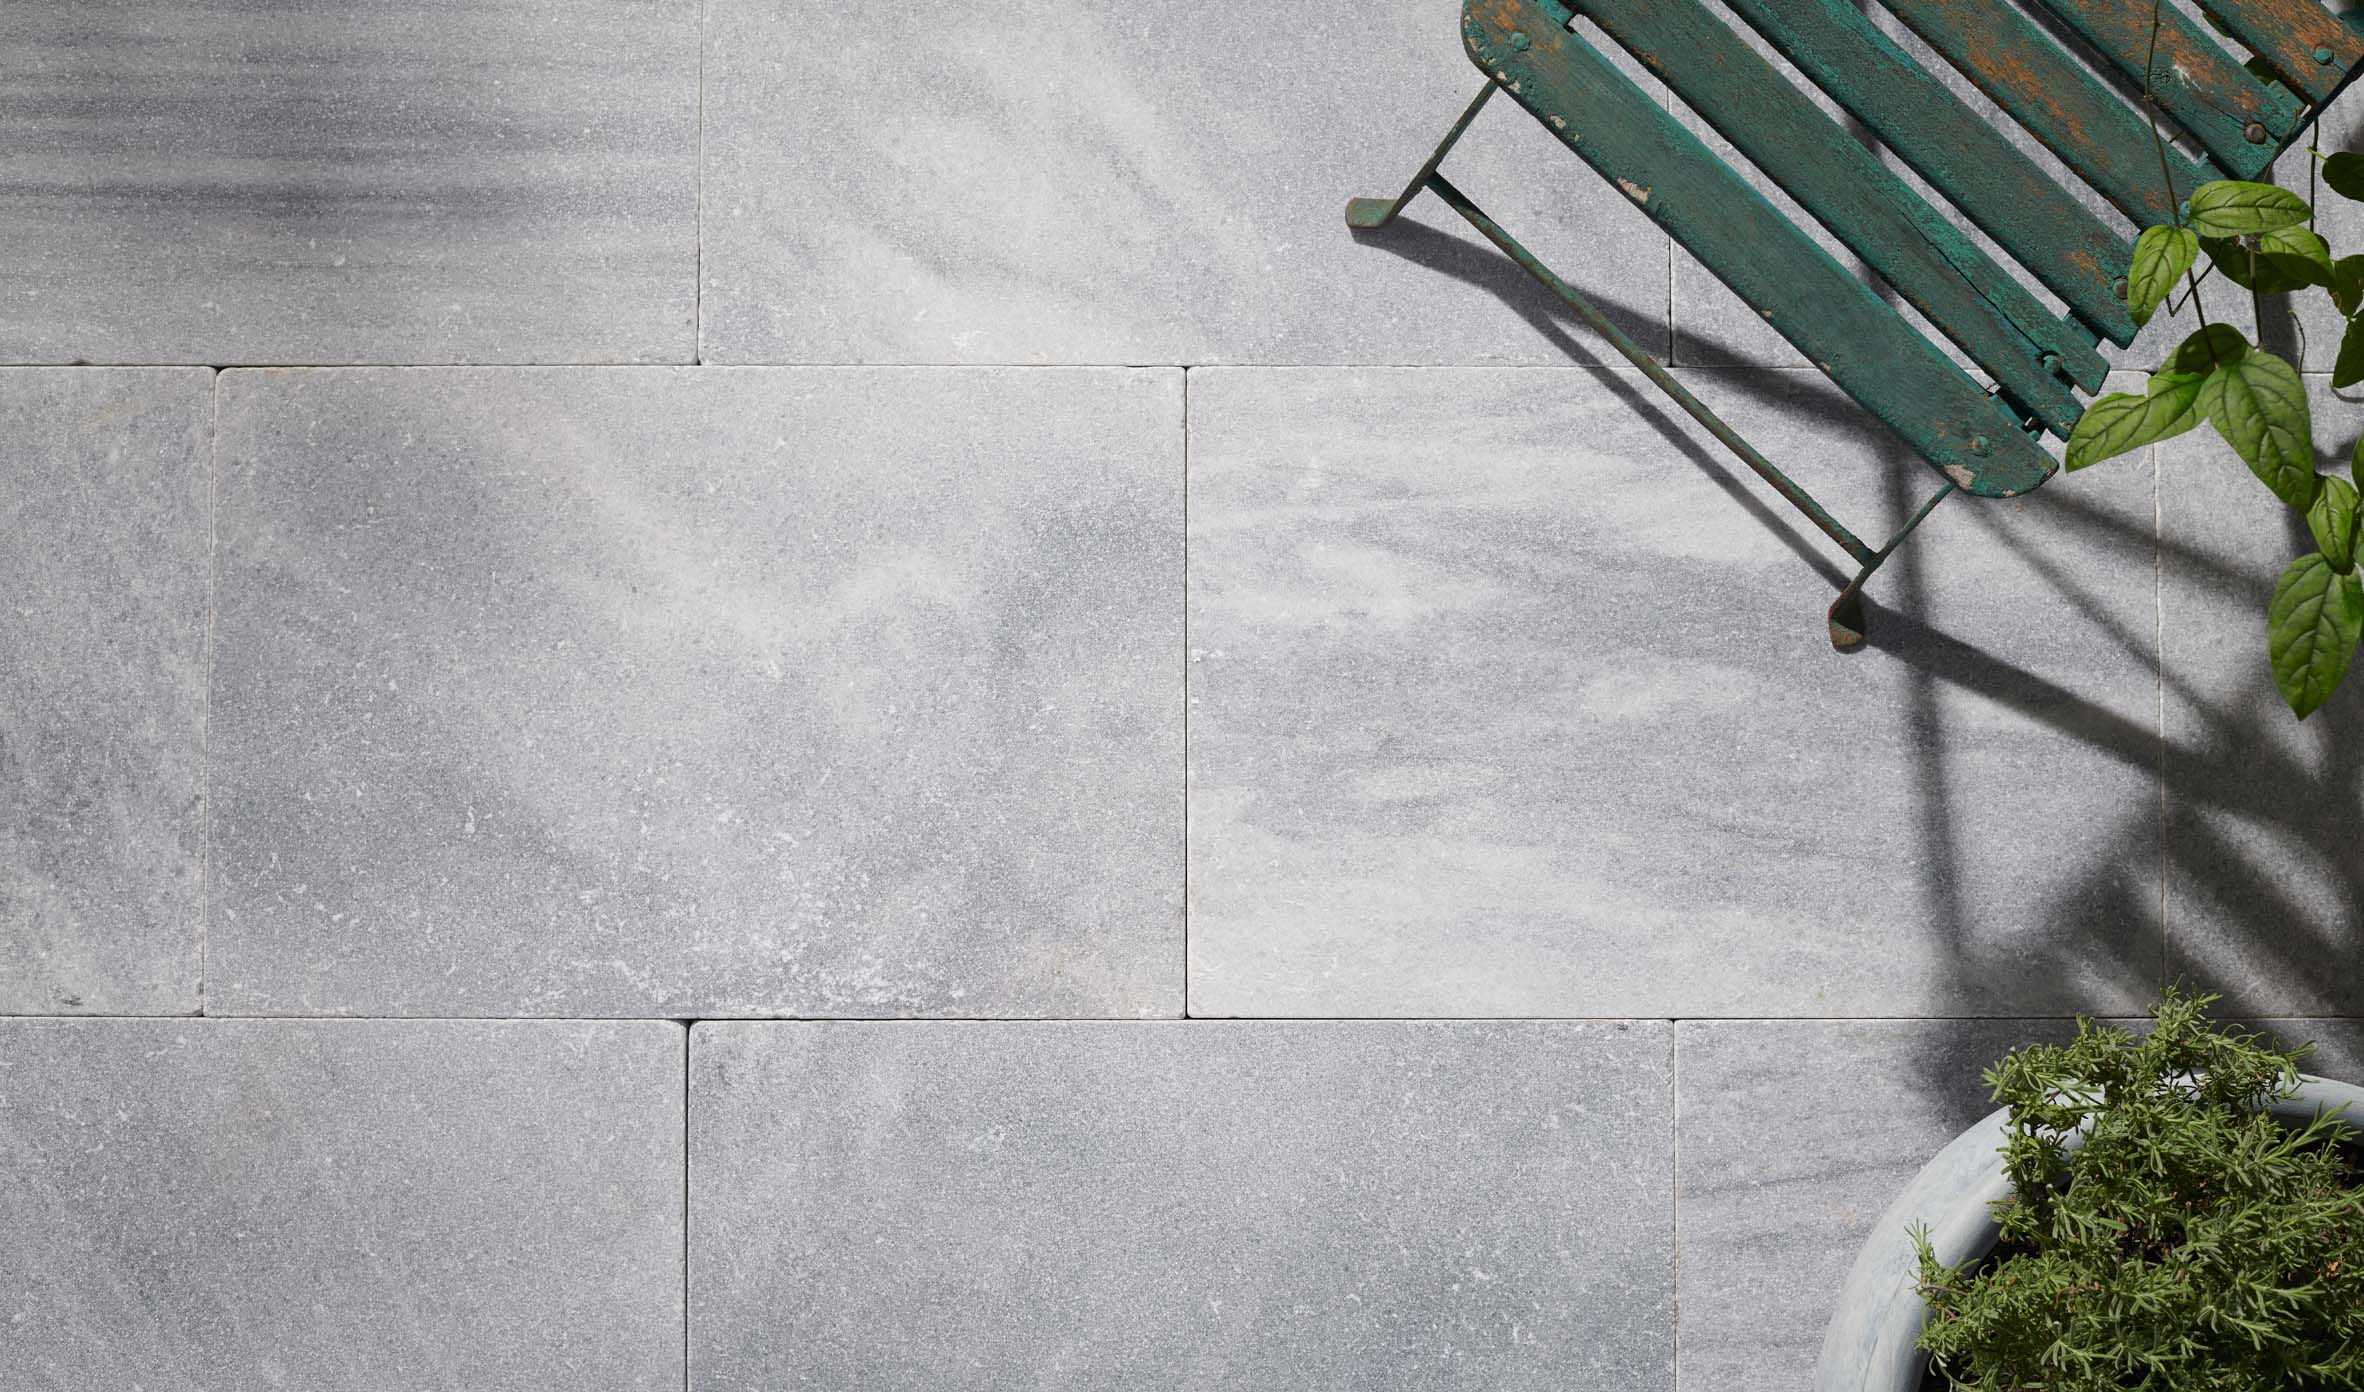 Stone-Pavers-and-Tiles-Outdoor Thumbnail stone-pavers-and-tiles-outdoor-thumbnail-03